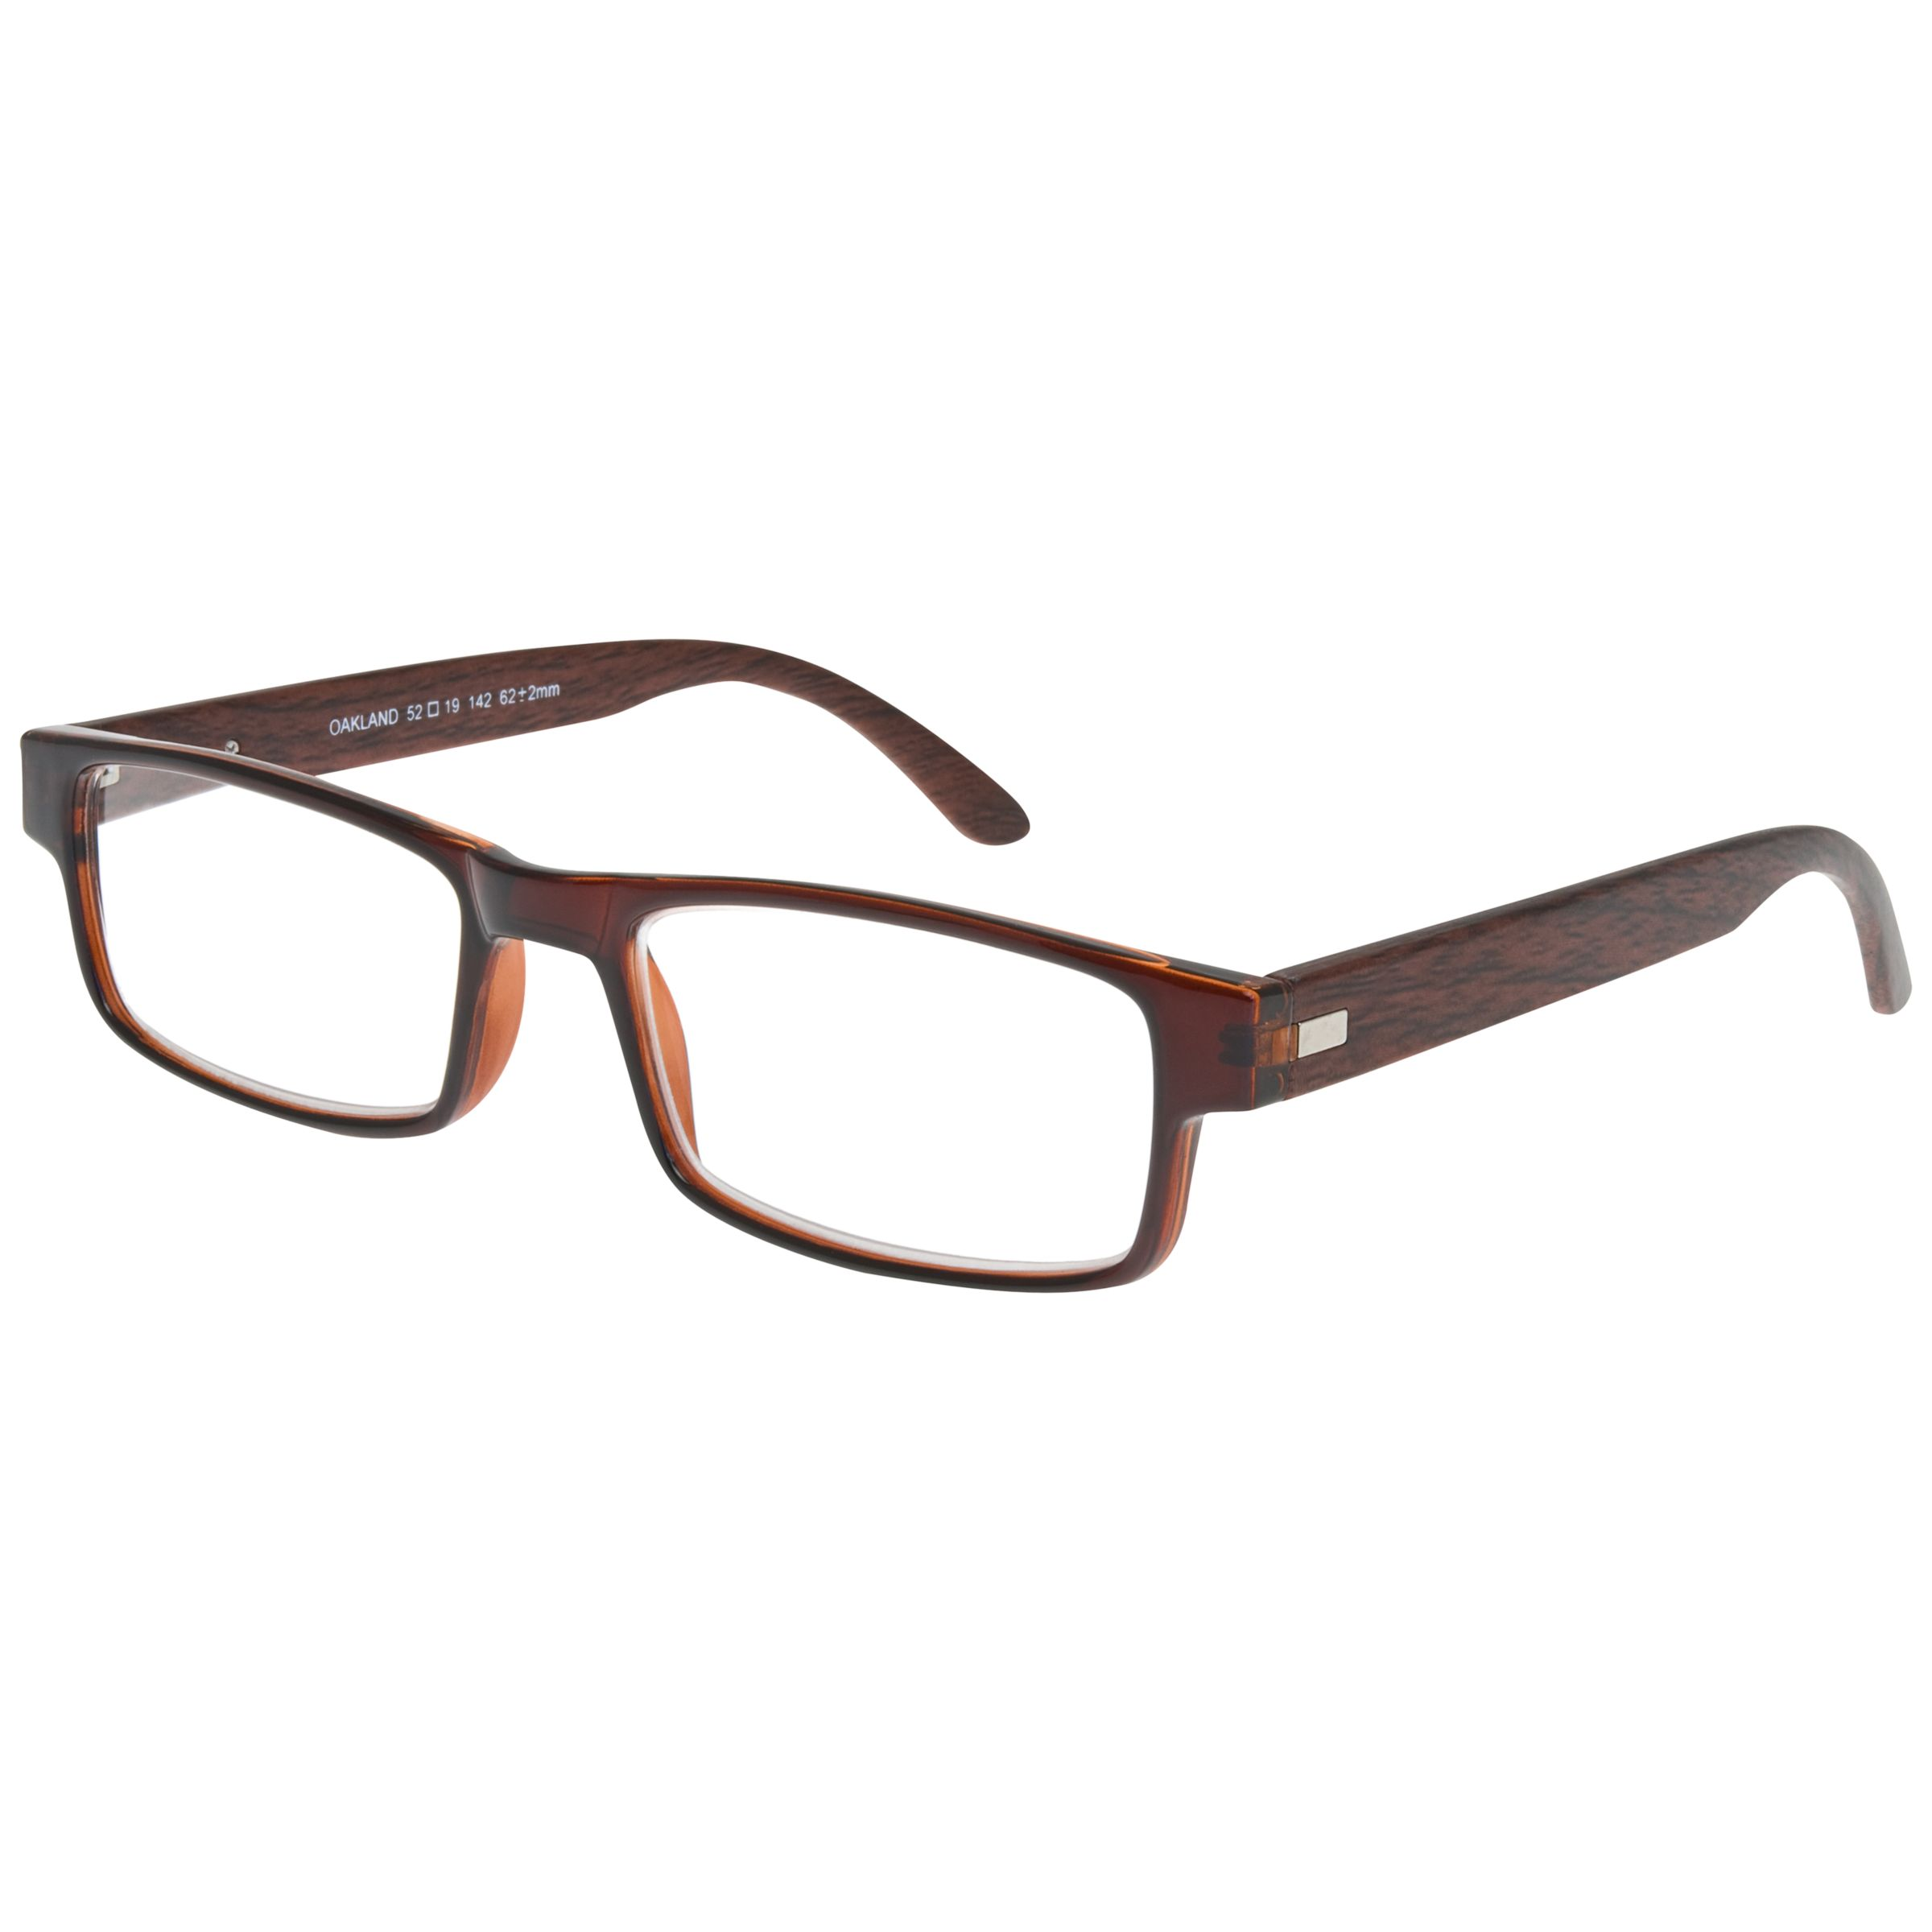 Magnif Eyes Magnif Eyes Oakland Unisex Ready Readers Oakland Glasses, Red